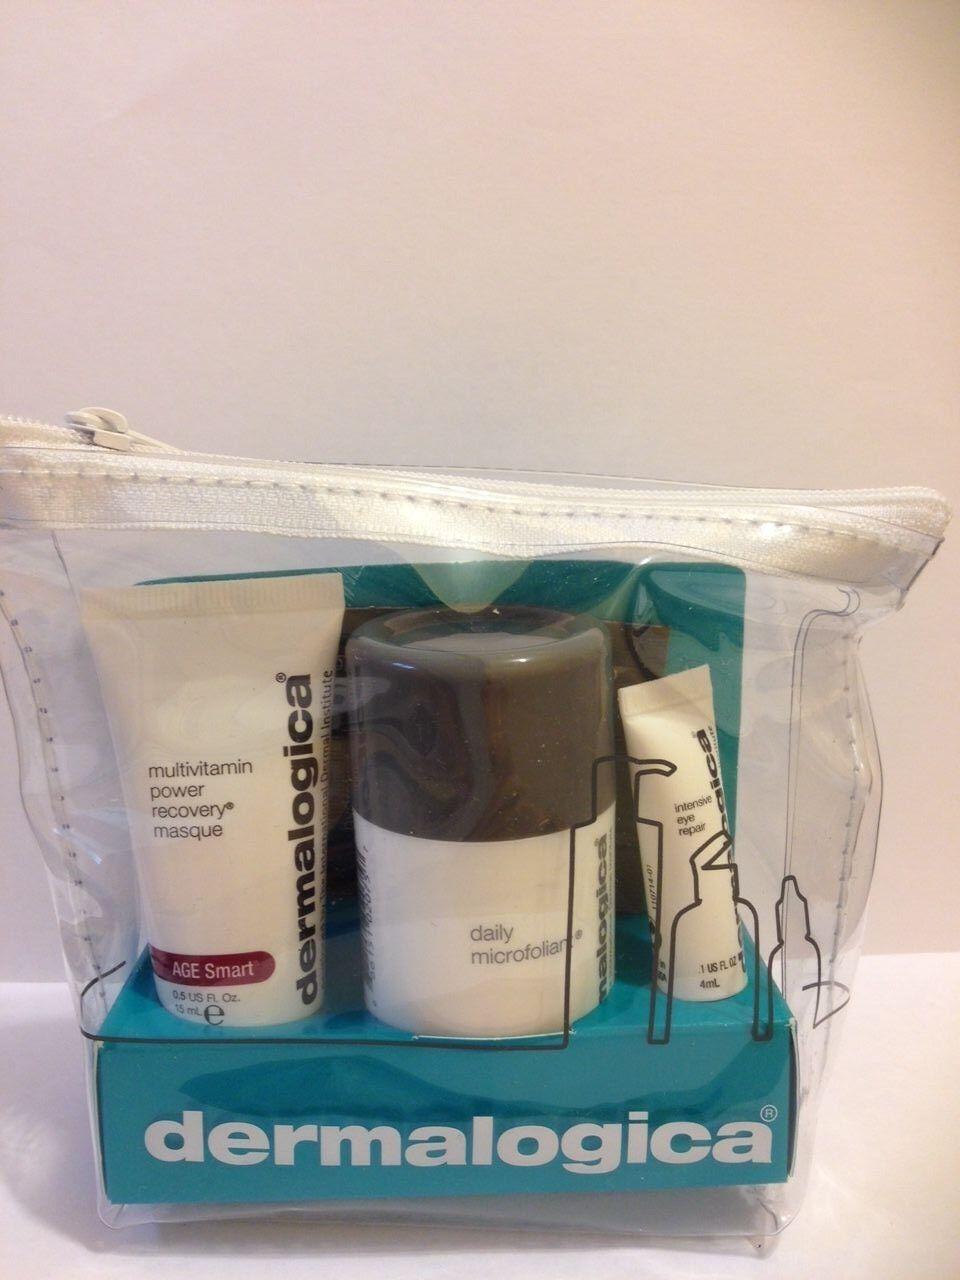 Dermalogica travel kit 3 products:intensive eye,recovery mas